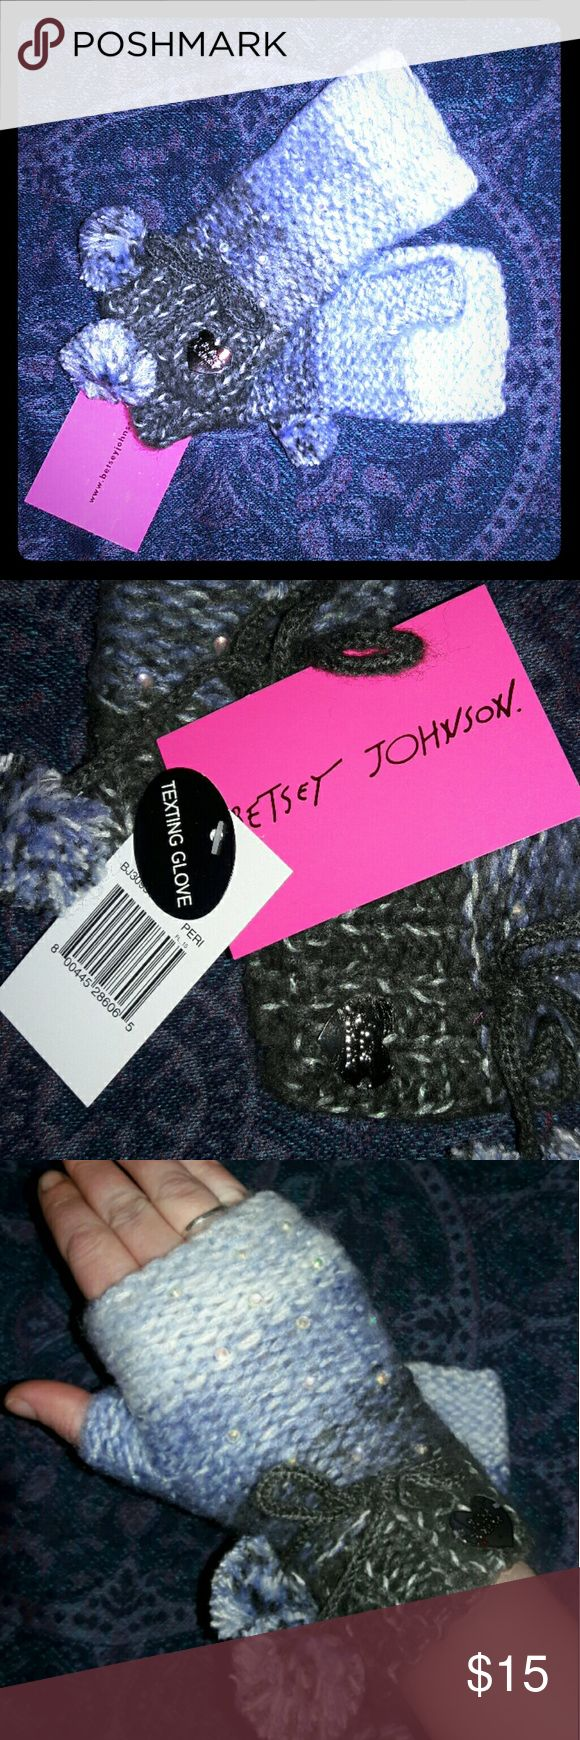 NWT Betsey Johnson Knit Texting Gloves Periwinkle + Surprise freebies with every purchase + NWT New with tags. Betsey John brand crystal knit fingerless texting gloves. Color: Periwinkle blue to gray ombre color. Sparkling crystals adorn the tops of the knitted gloves. Each wrist has a tie with two pom-poms and a silver heart with the Betsey Johnson logo is on the right hand glove. MSRP: $24.00  * Bundle 2 or more listings and save 15% * Betsey Johnson Accessories Gloves & Mittens